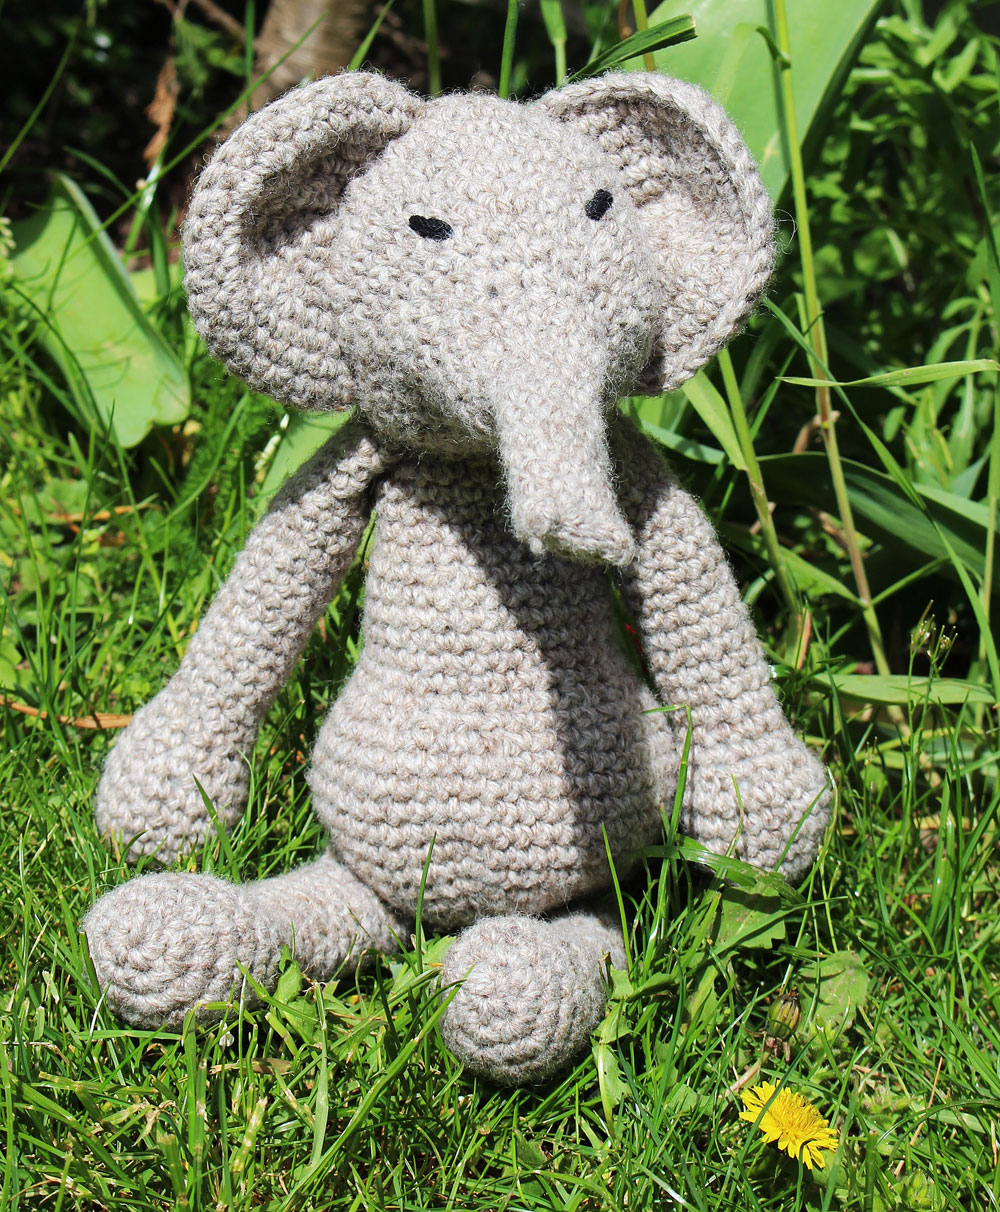 Edwards freche Tierparade - Elefant  Buchbesprechung: Edwards freche Tierparade von Kerry Lord